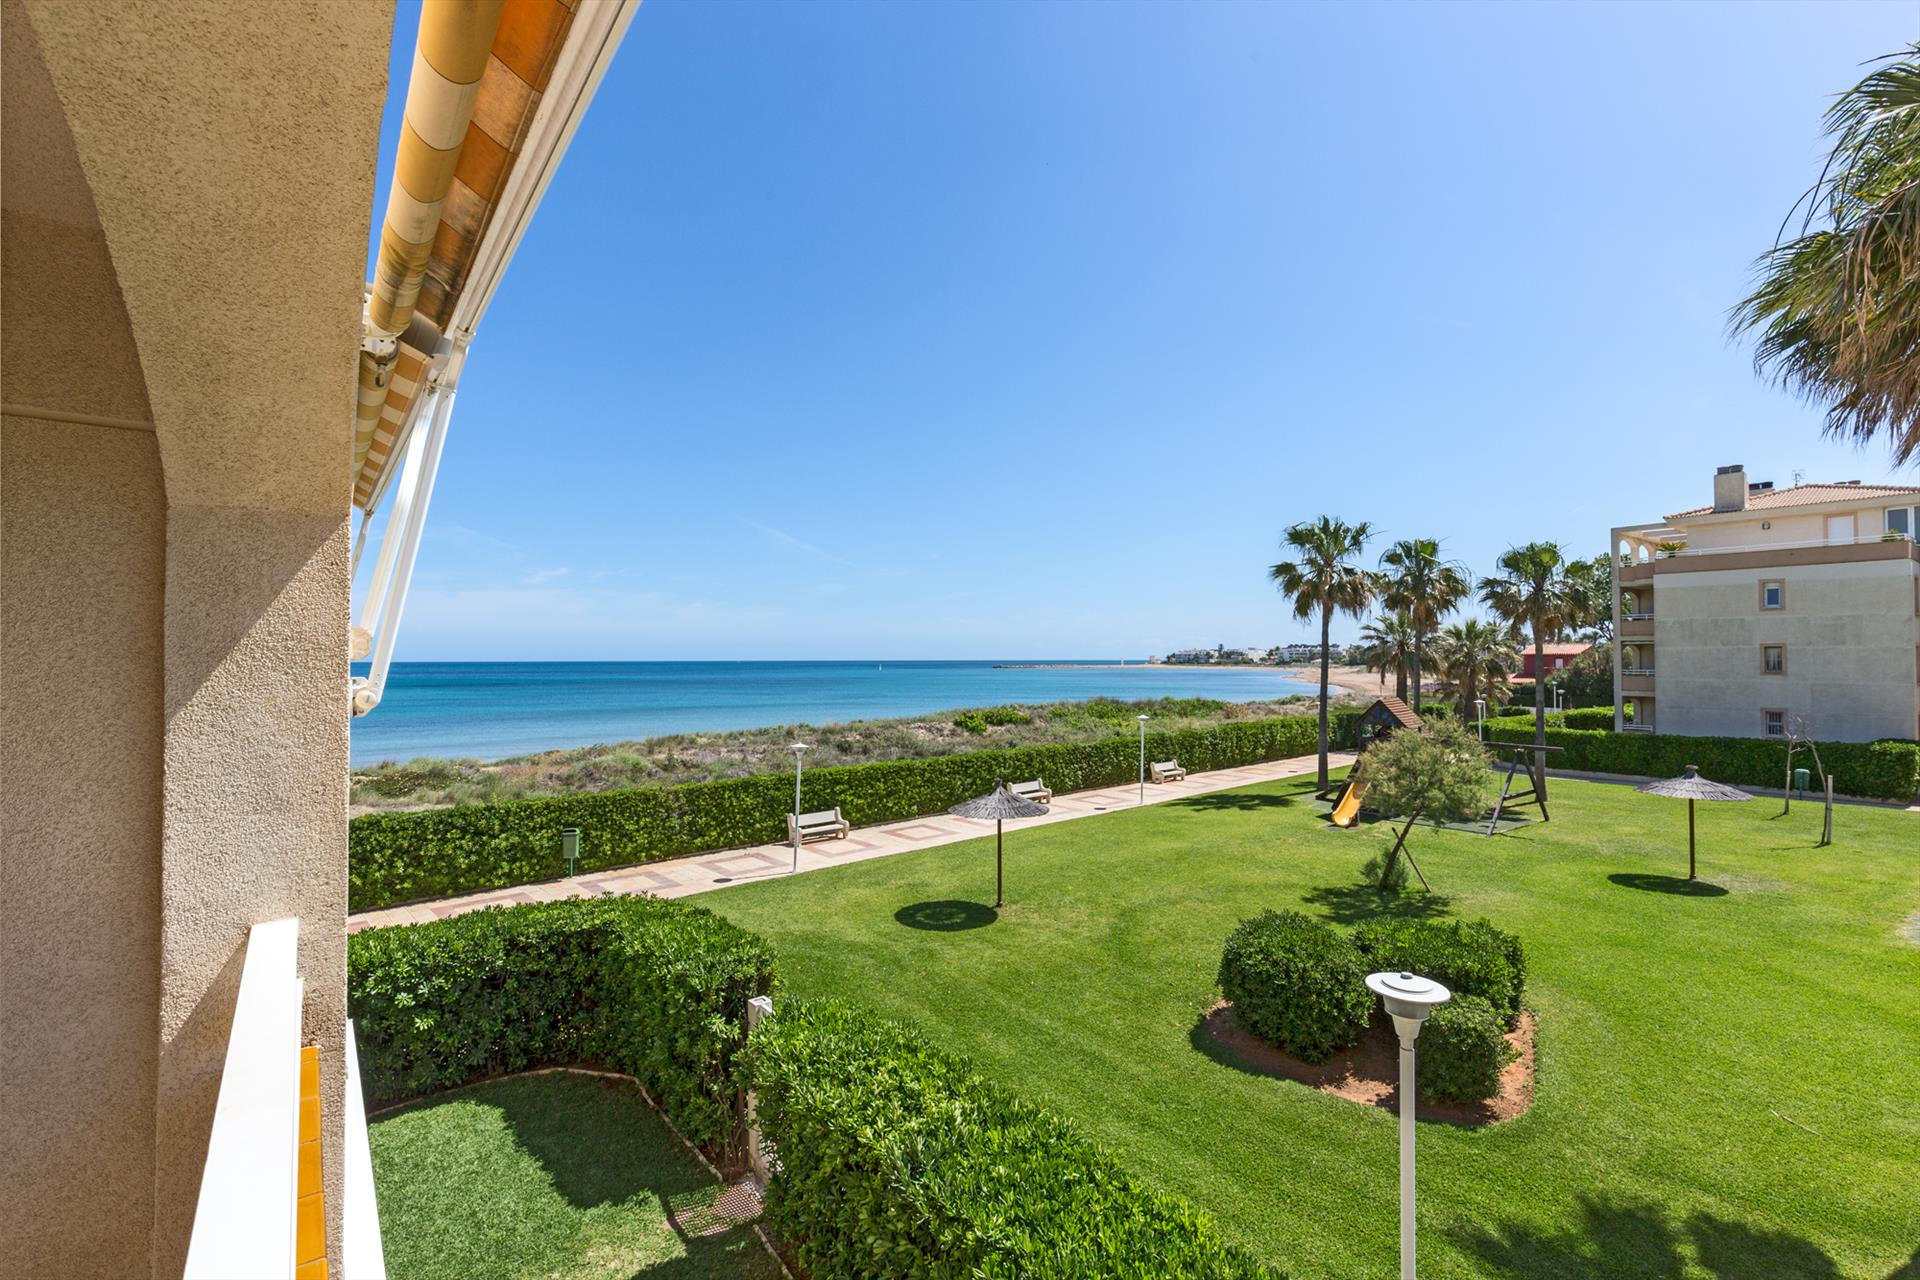 AP2111 Urb Bahia de Denia primera linea, Beautiful and cheerful apartment in Denia, on the Costa Blanca, Spain  with communal pool for 6 persons.....